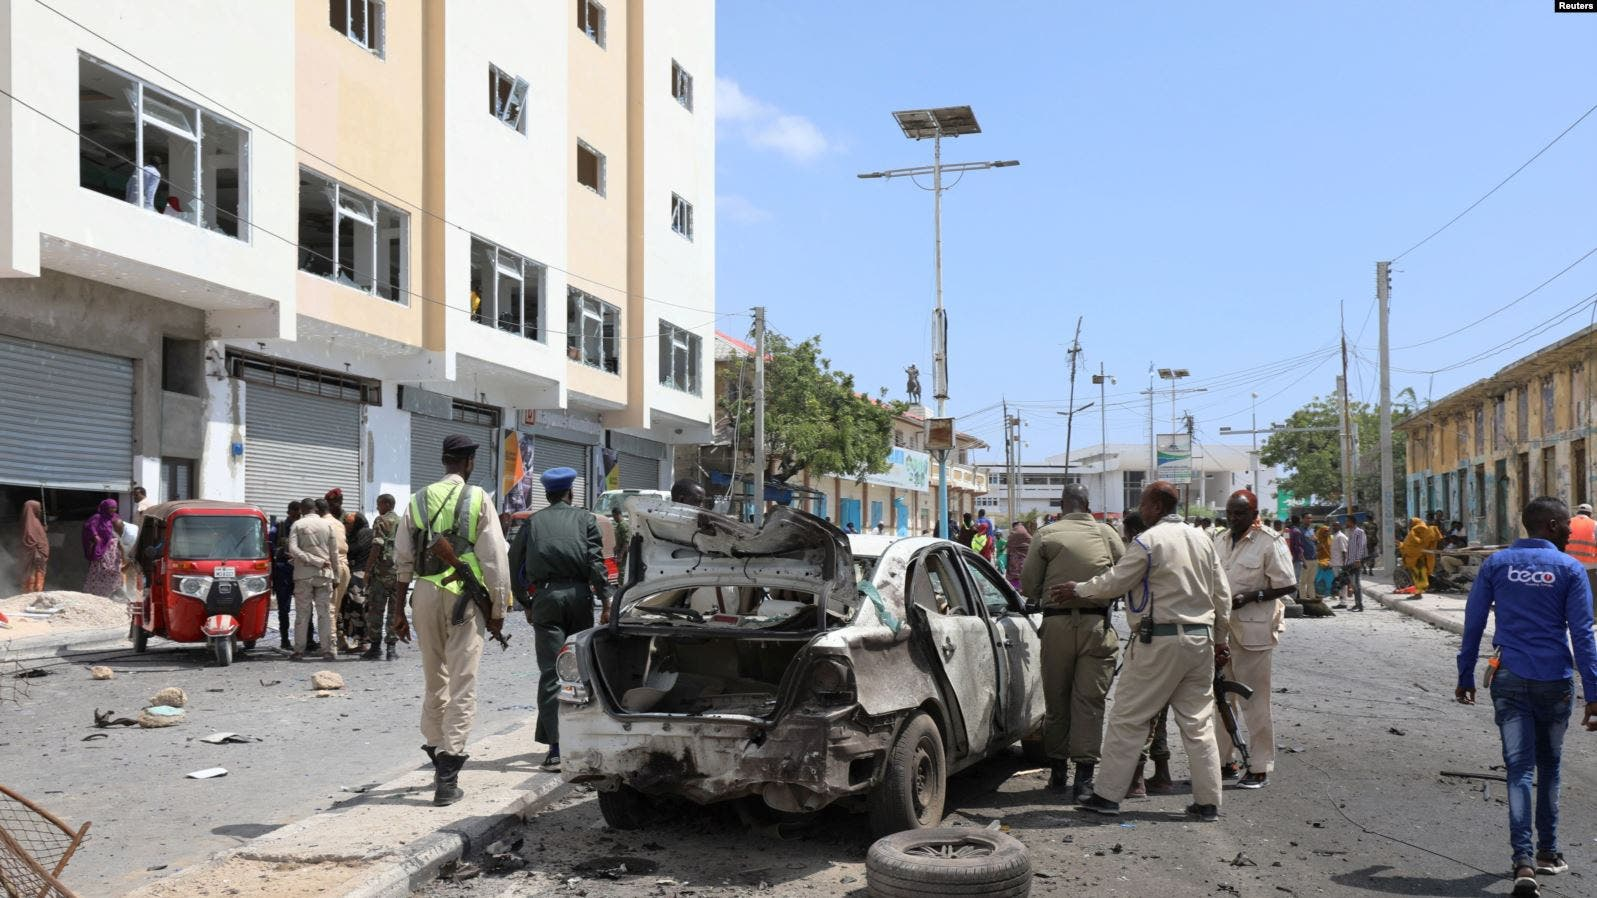 Senior Police Officer Killed In Car Bomb In Mogadishu